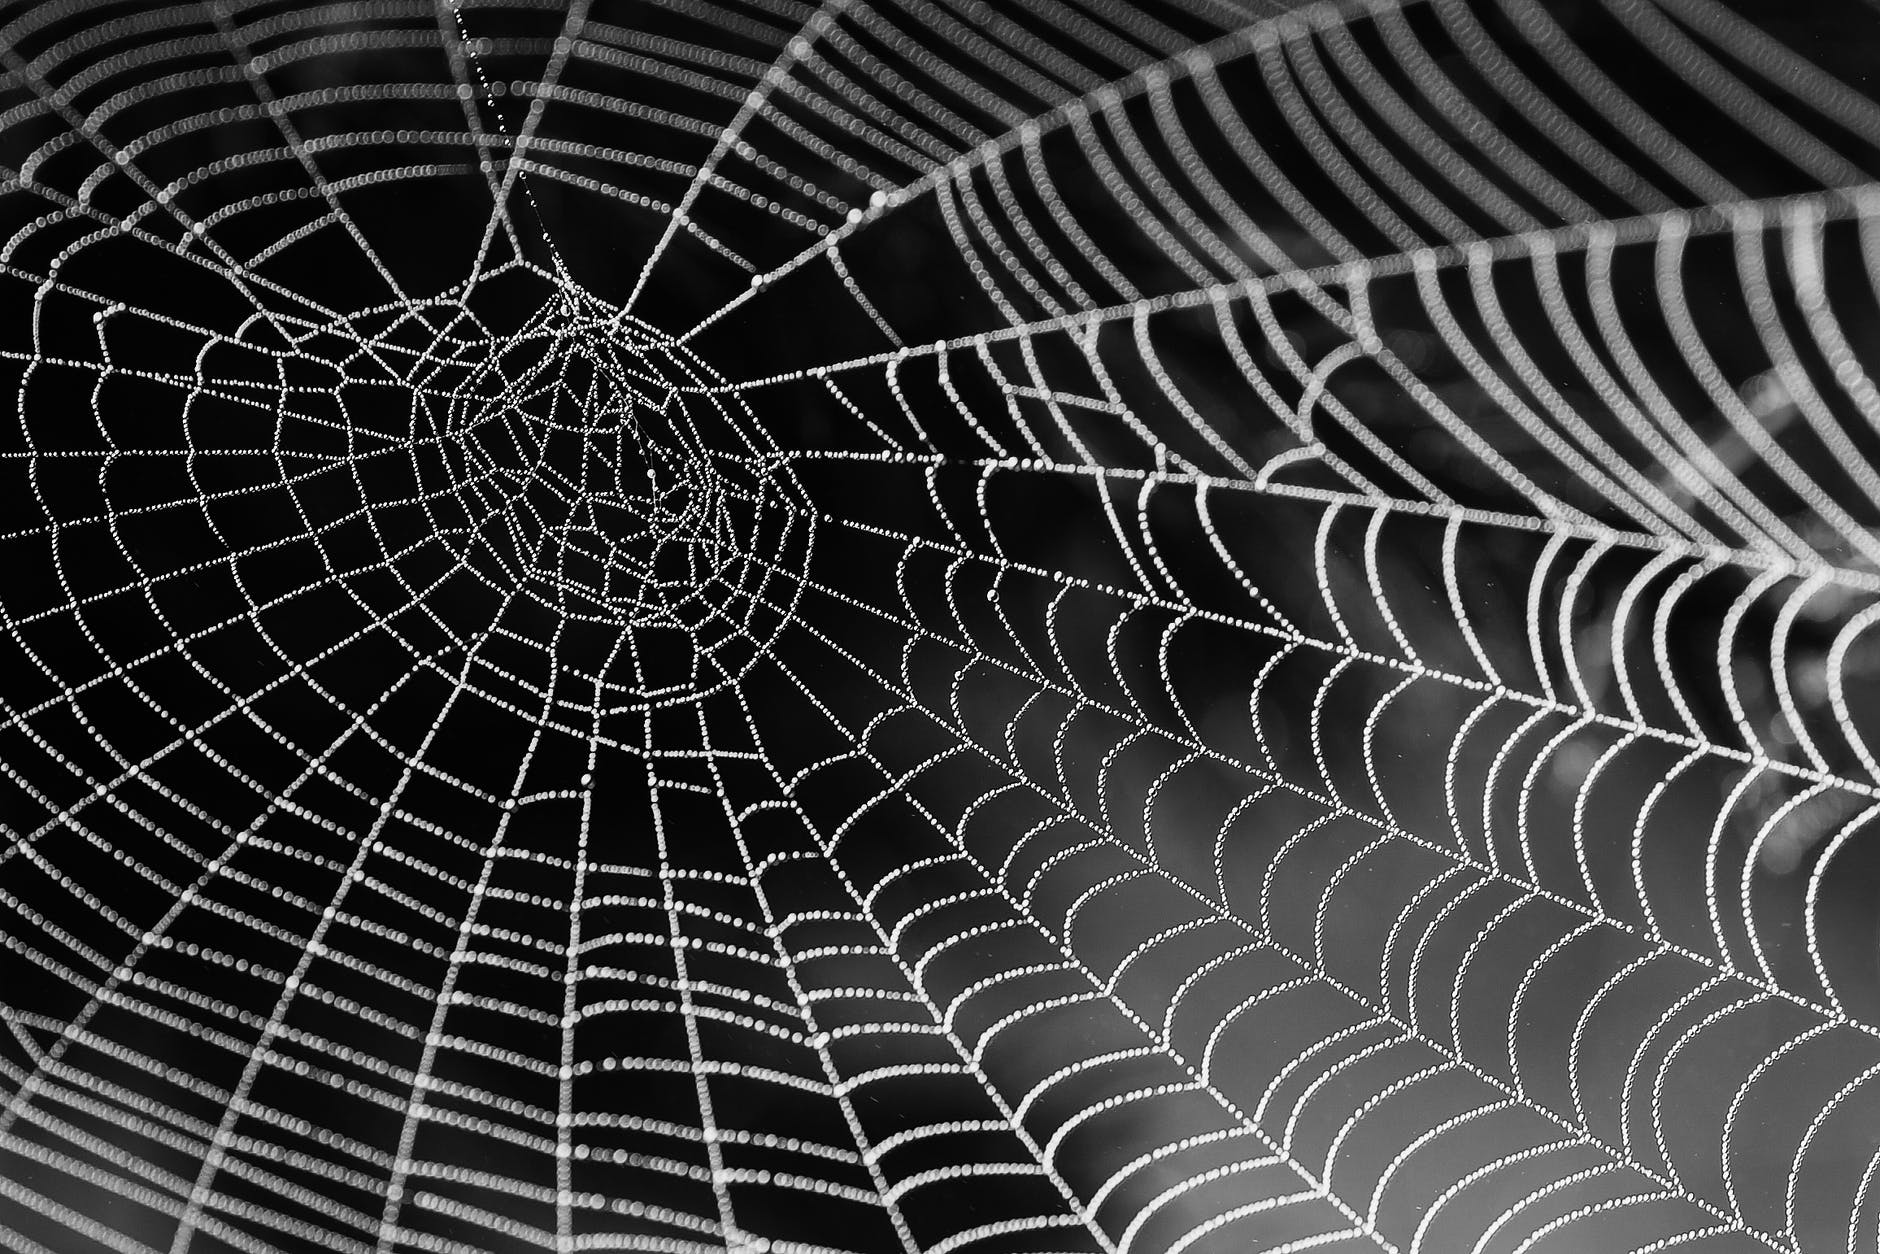 spider web analogy for internet